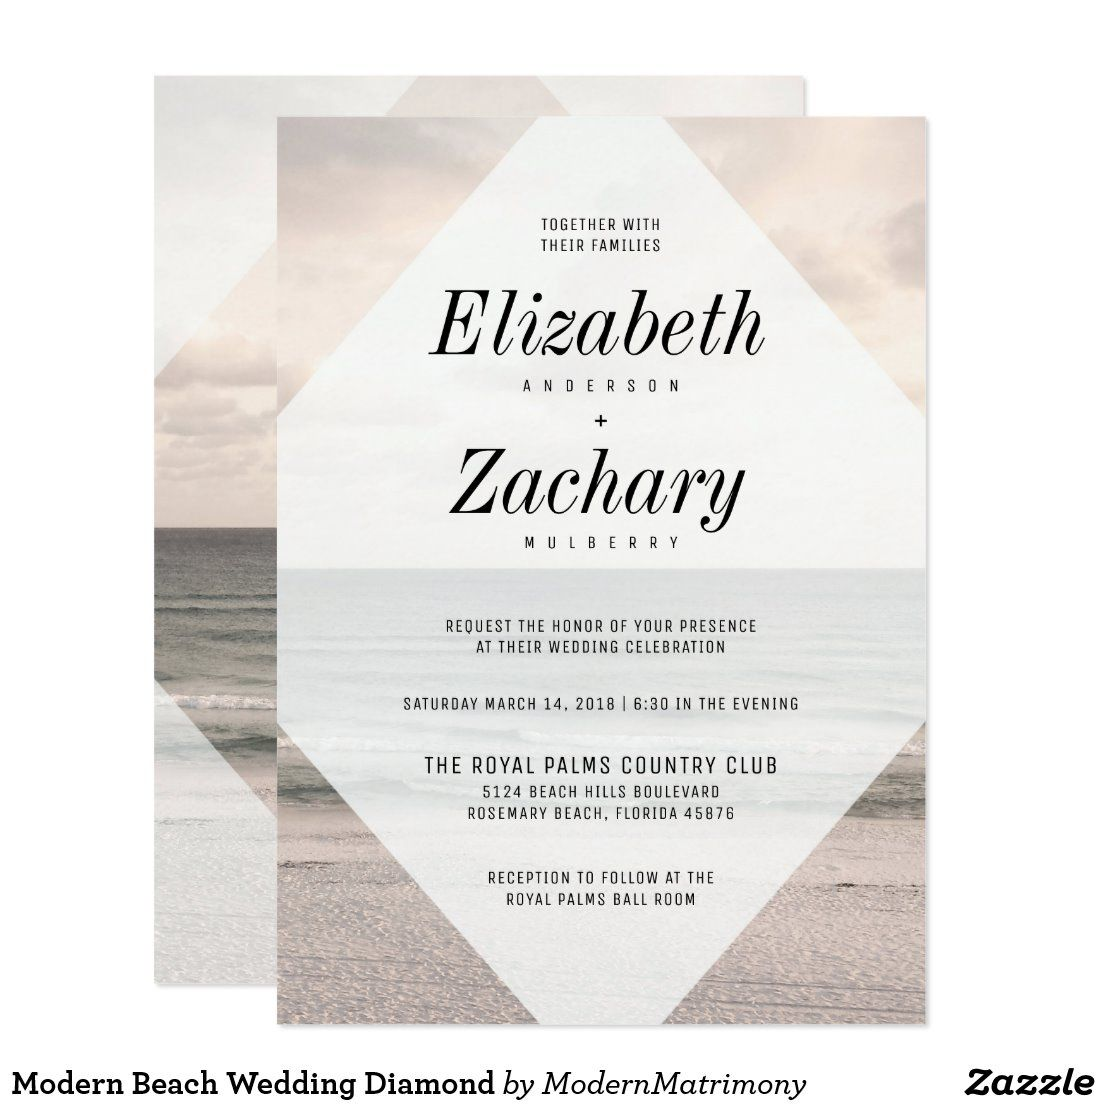 Modern Beach Wedding Diamond Invitation Zazzle Com Di 2020